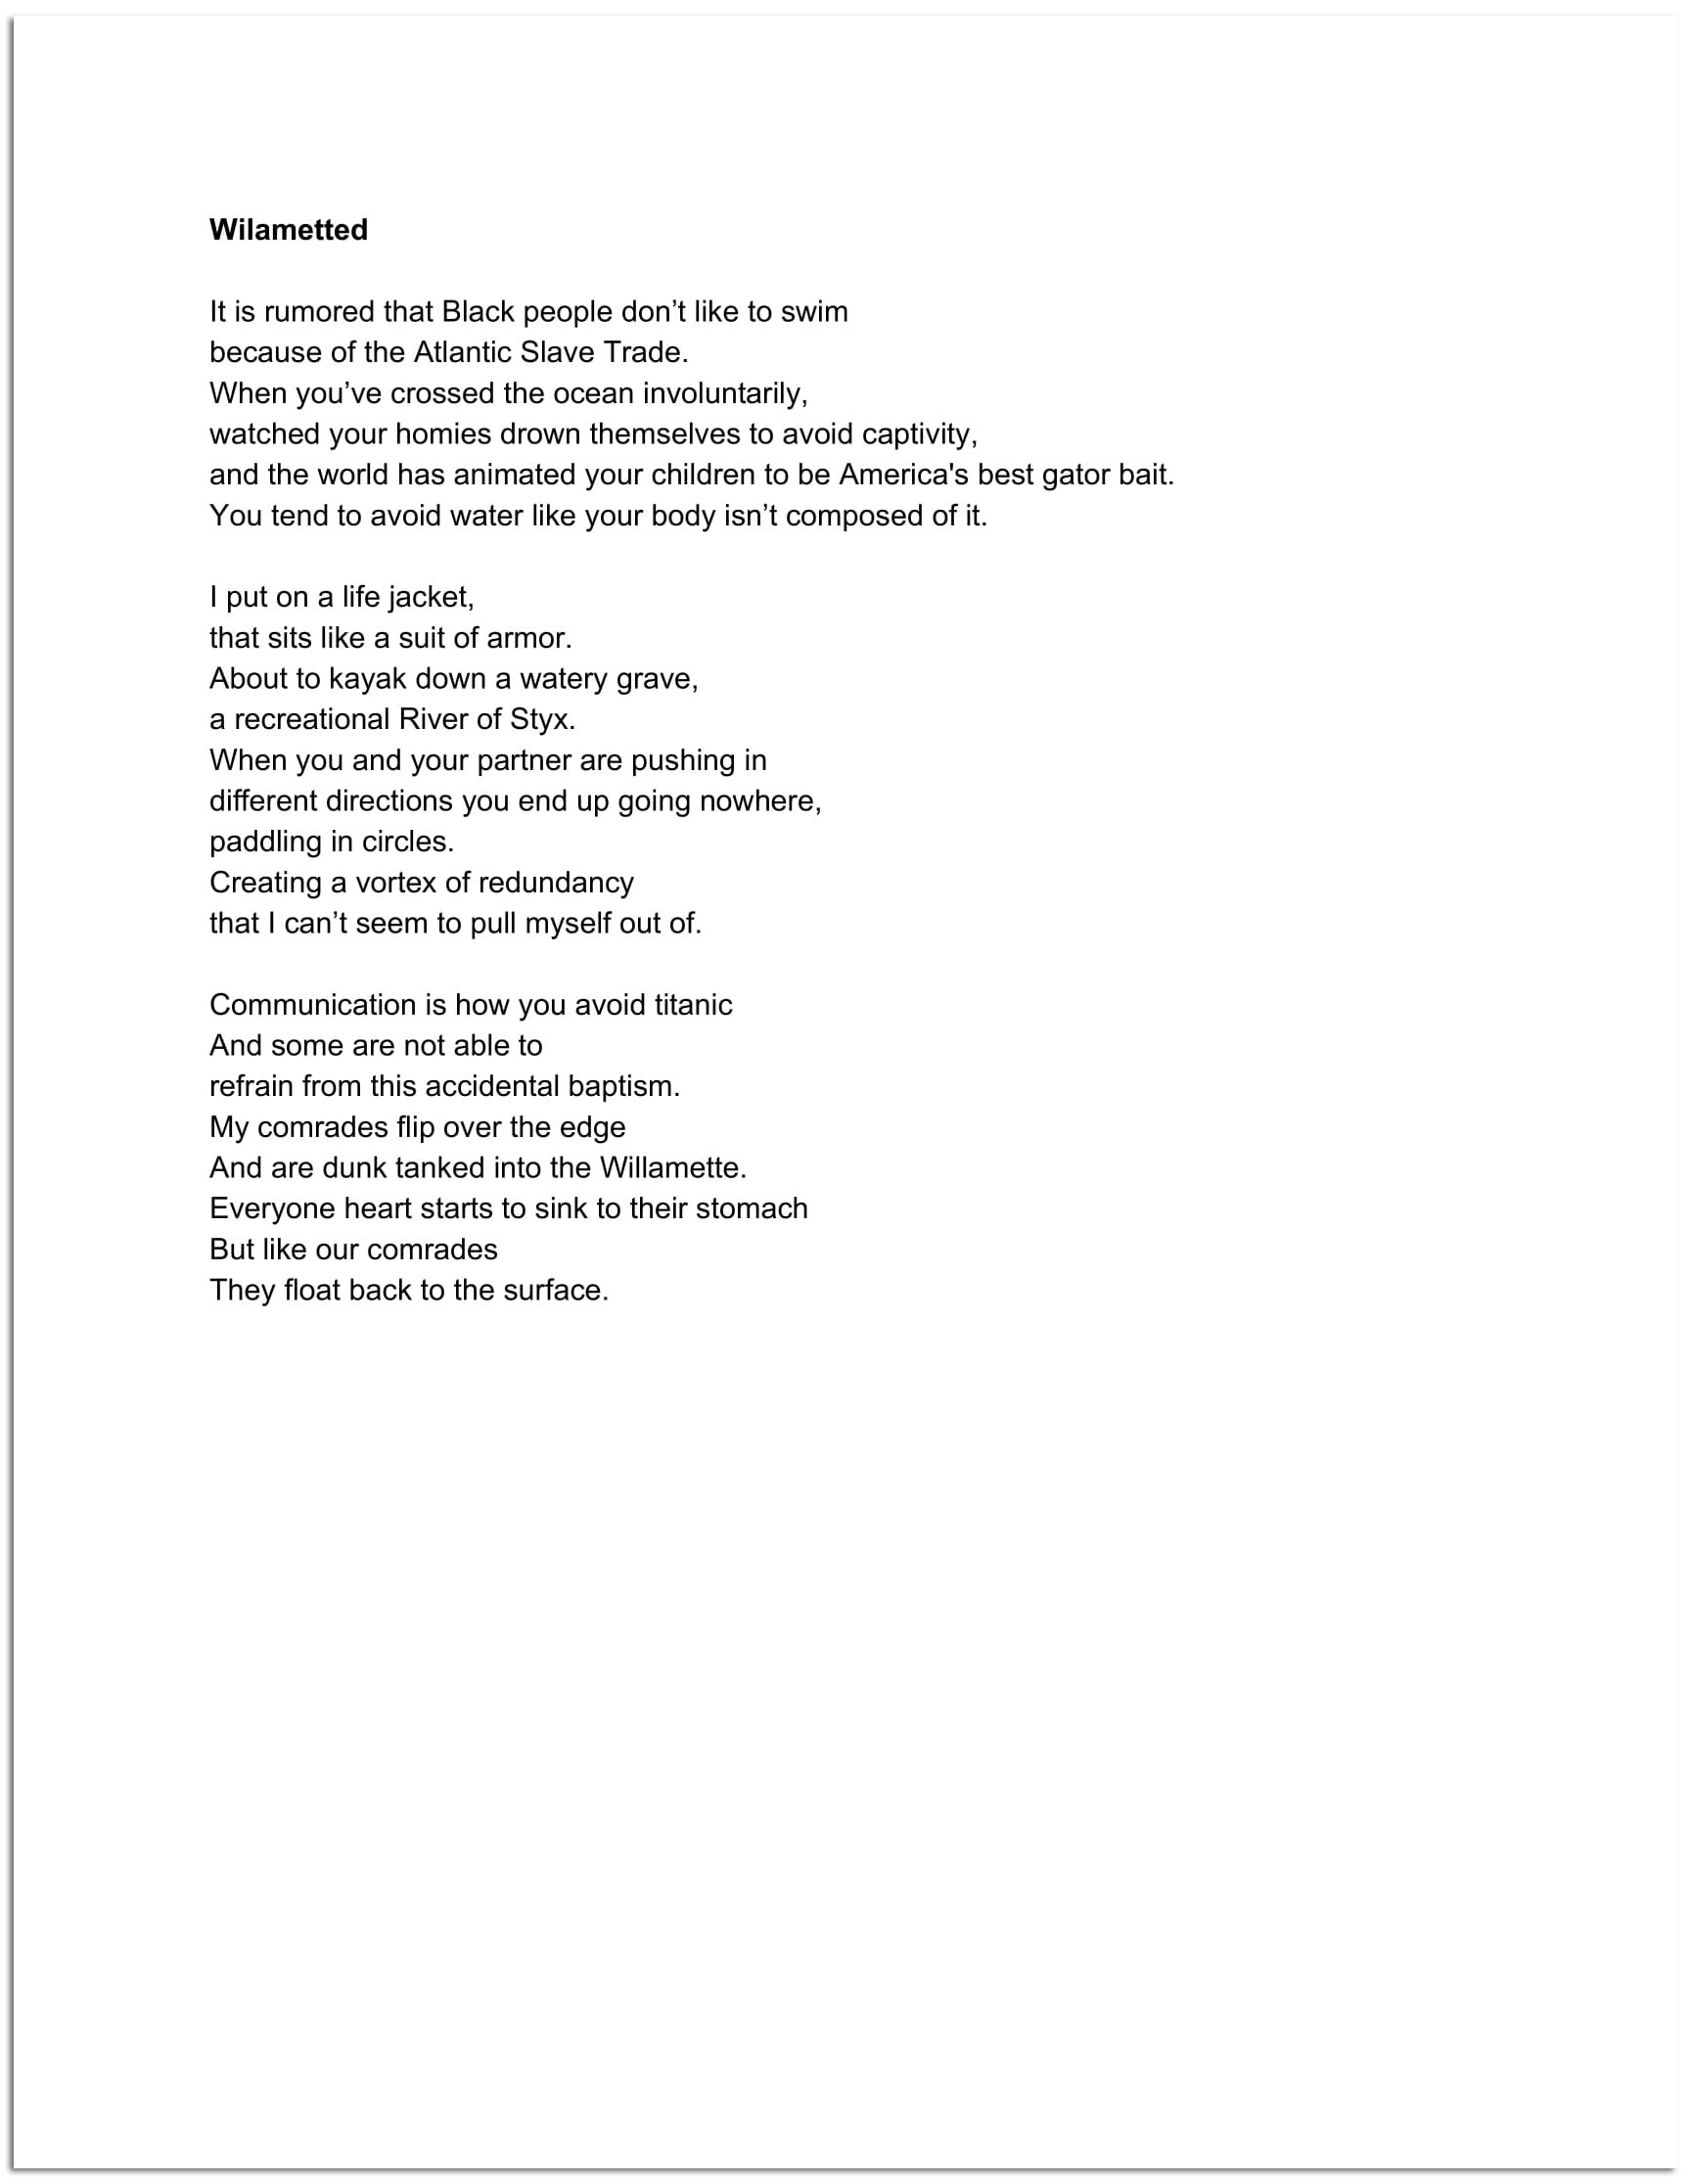 From Burnside with Love (2nd Draft)(1)-10.jpg